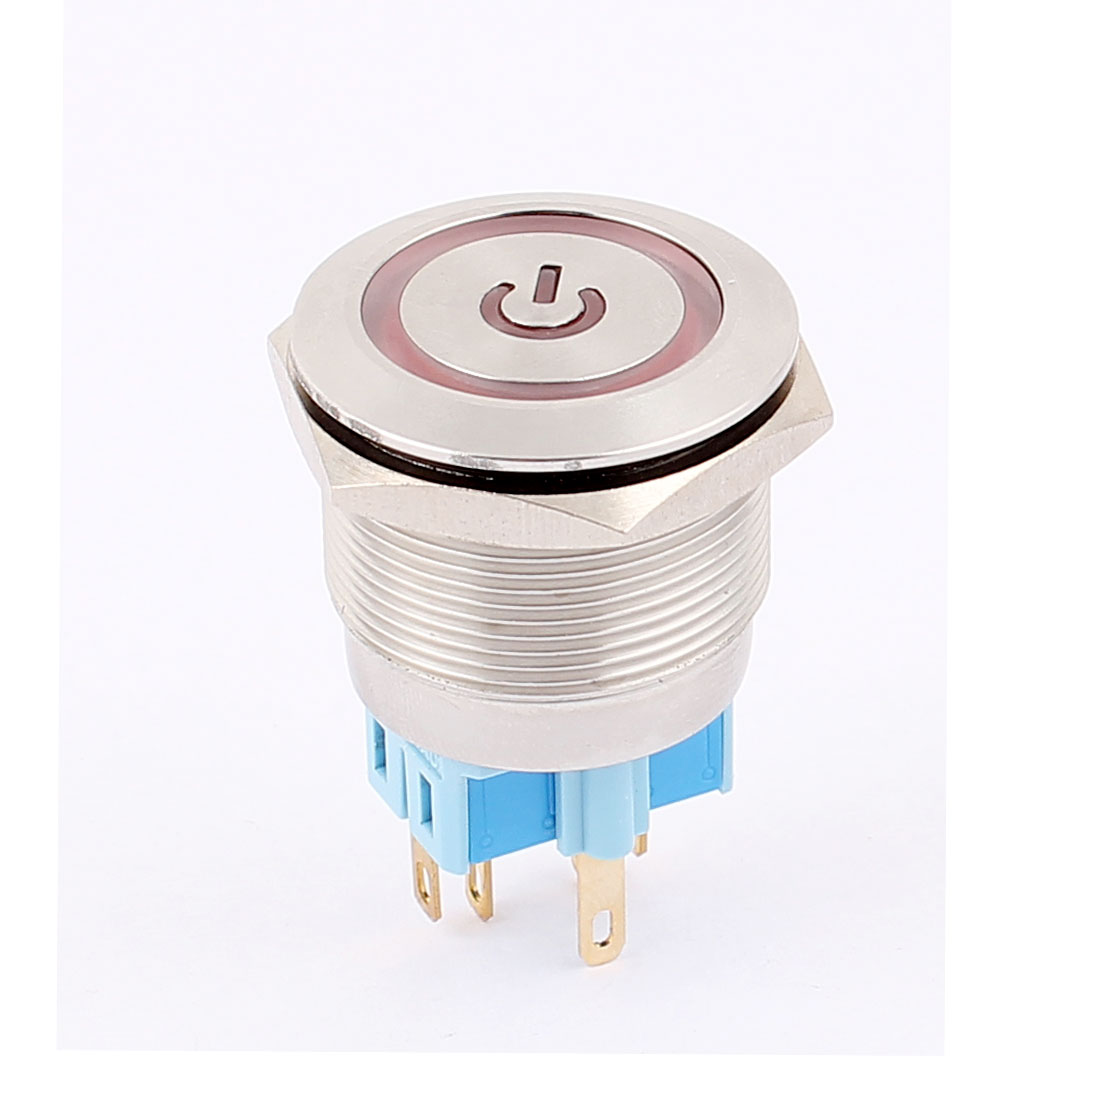 DC 24V 20mm Red LED Light 25mm Mounted Thread 6 Pins DPST ON/OFF Momentary Push Button Switch